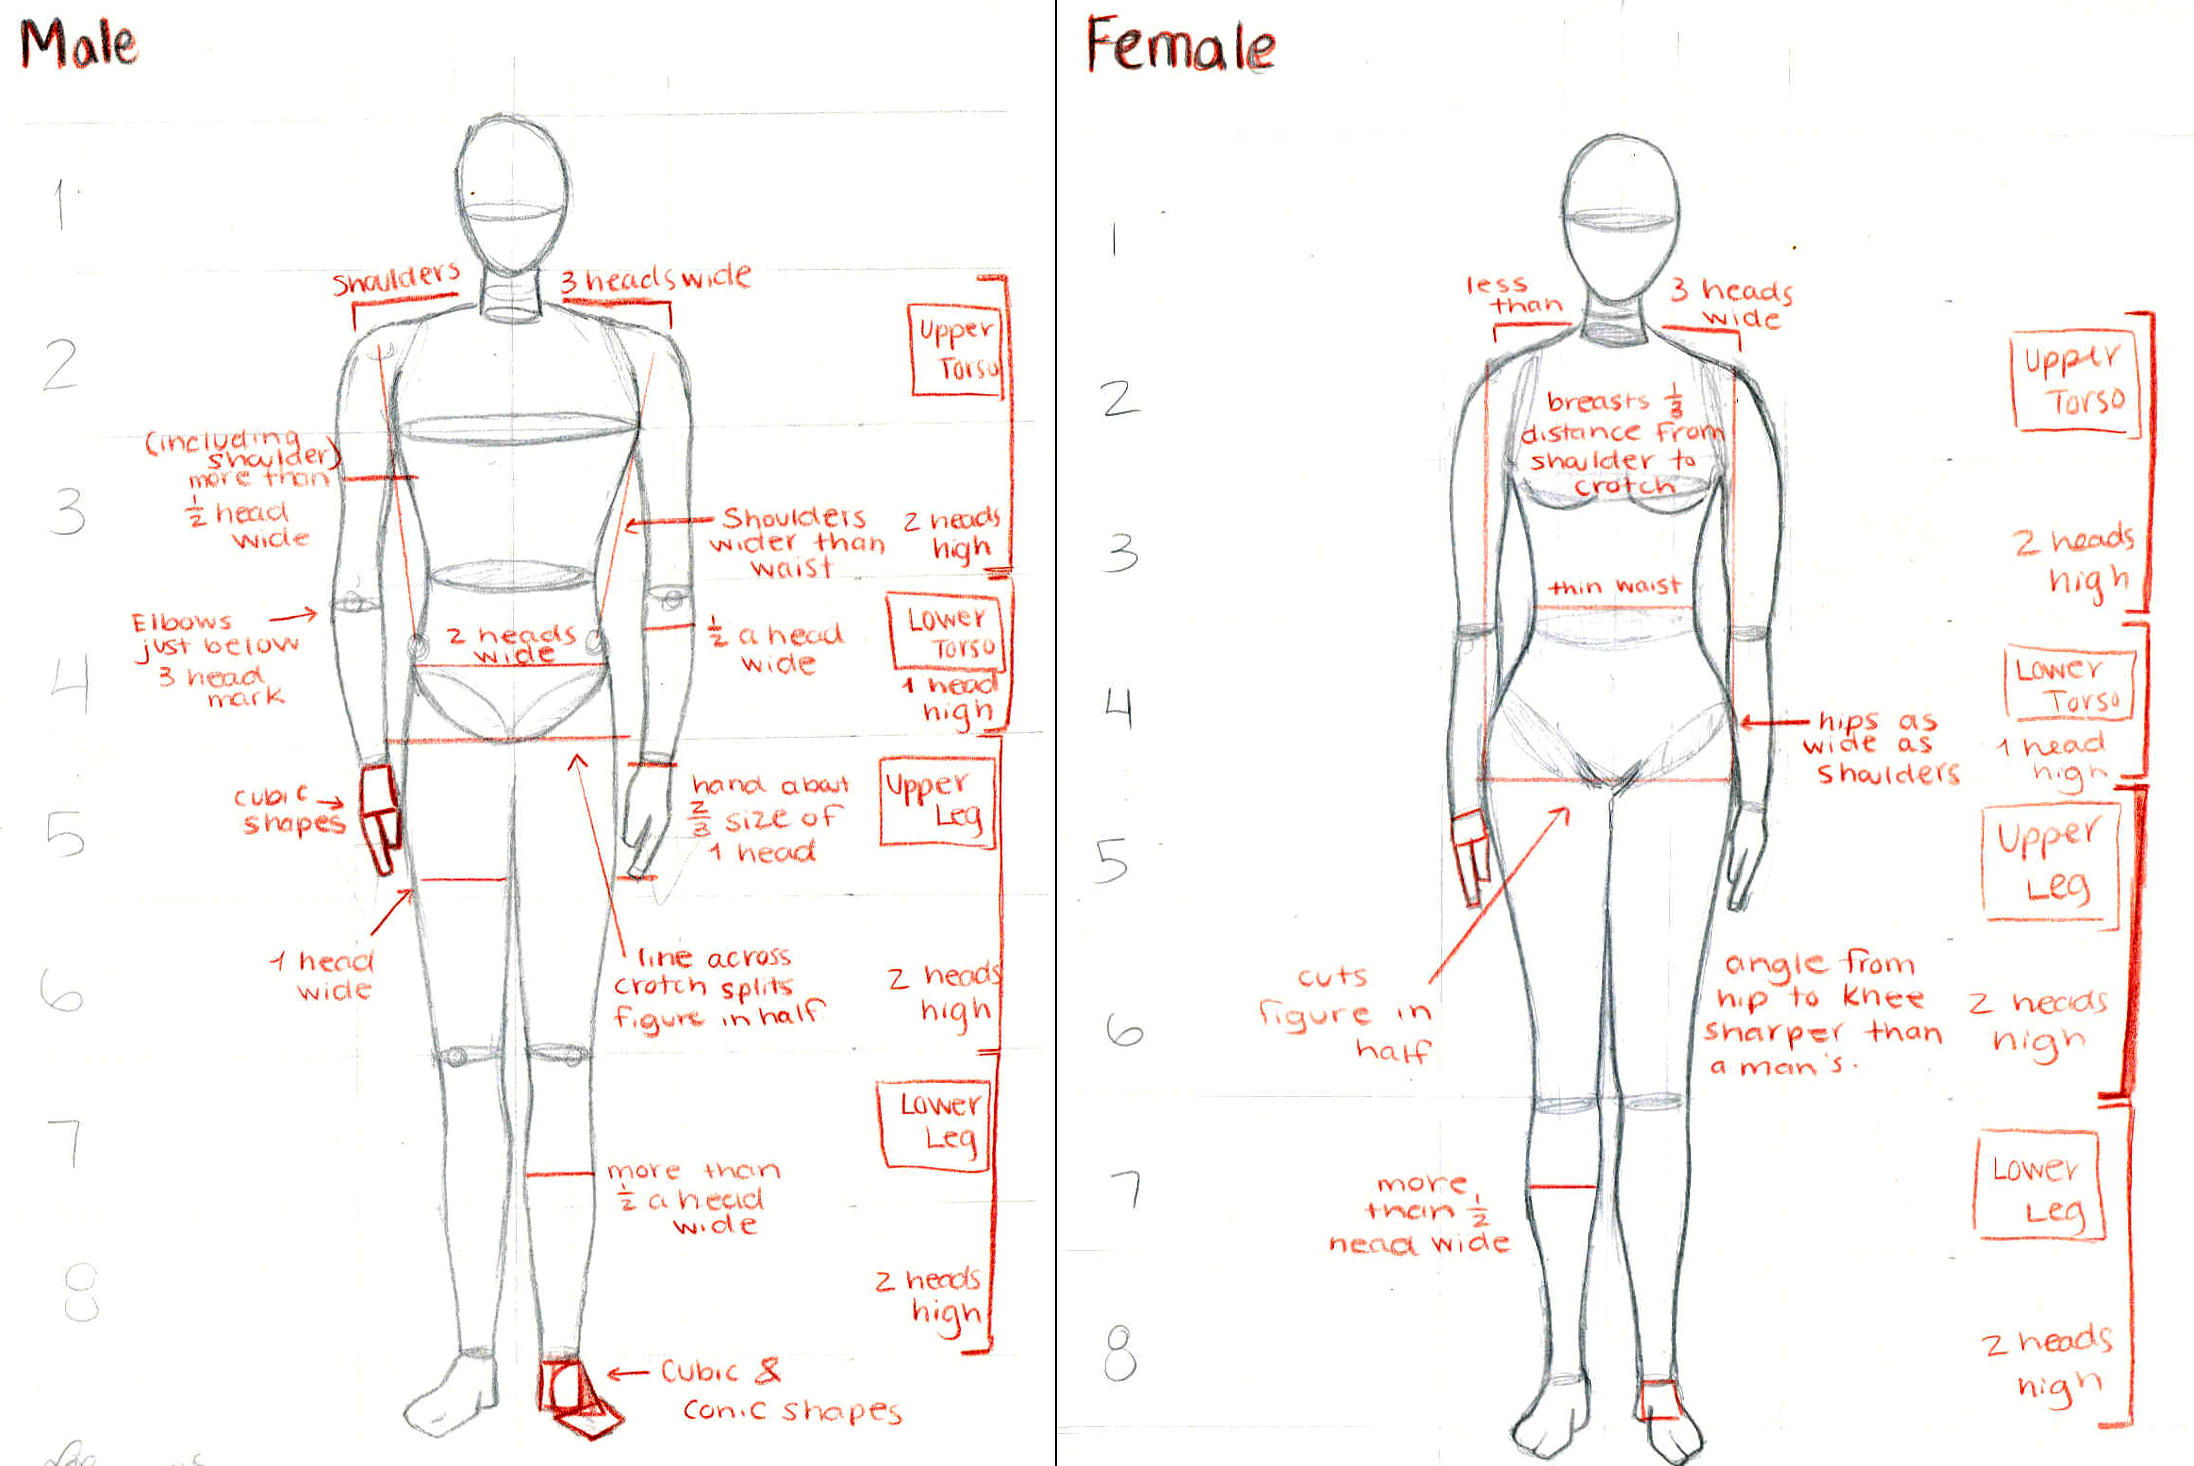 Male and Female Anatomy by lei-x on DeviantArt